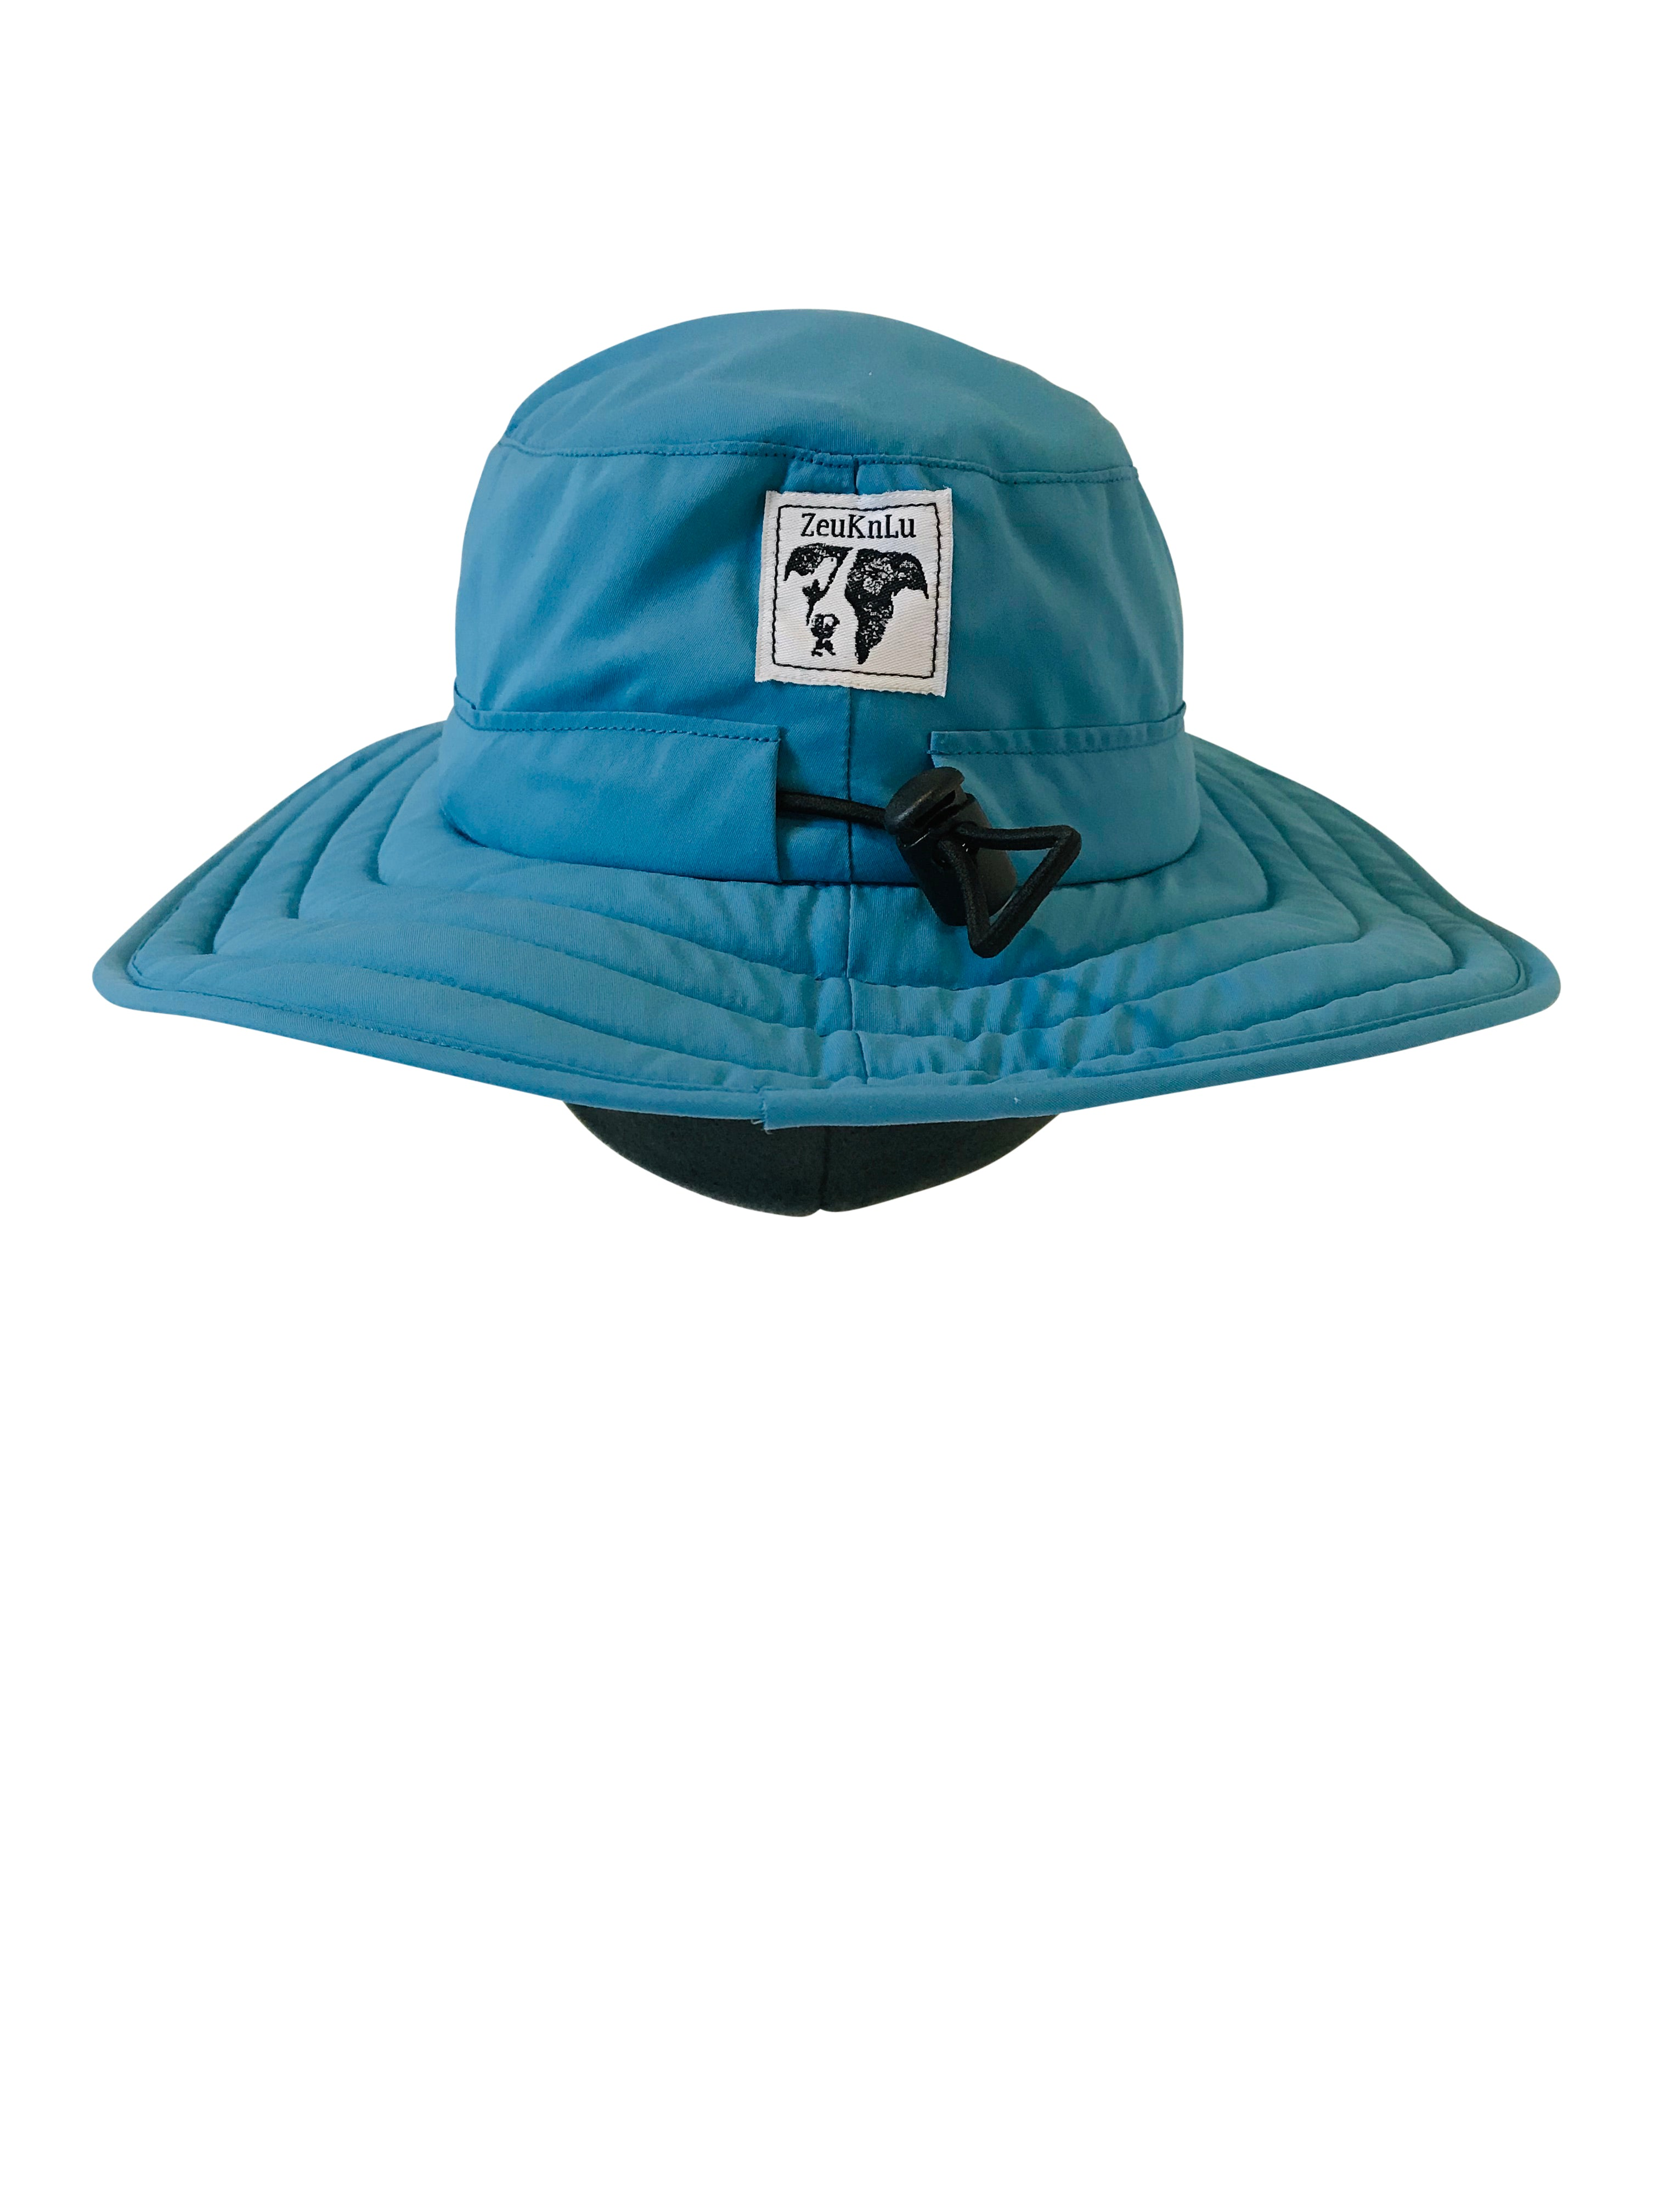 ZeuKnLu Niagara Sun Hat with removable liner back view